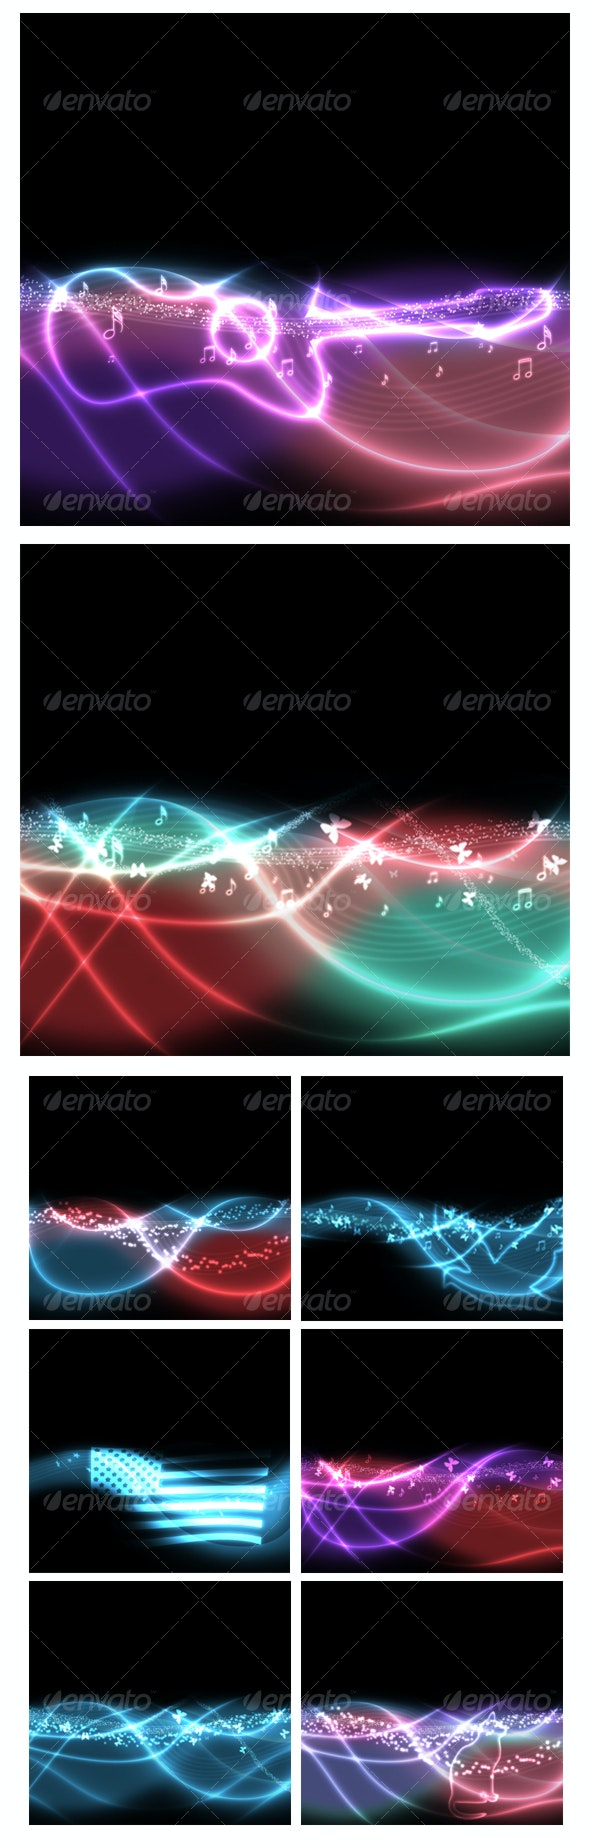 The Ultimate Abstract Background Creator v2.0 - Abstract Backgrounds